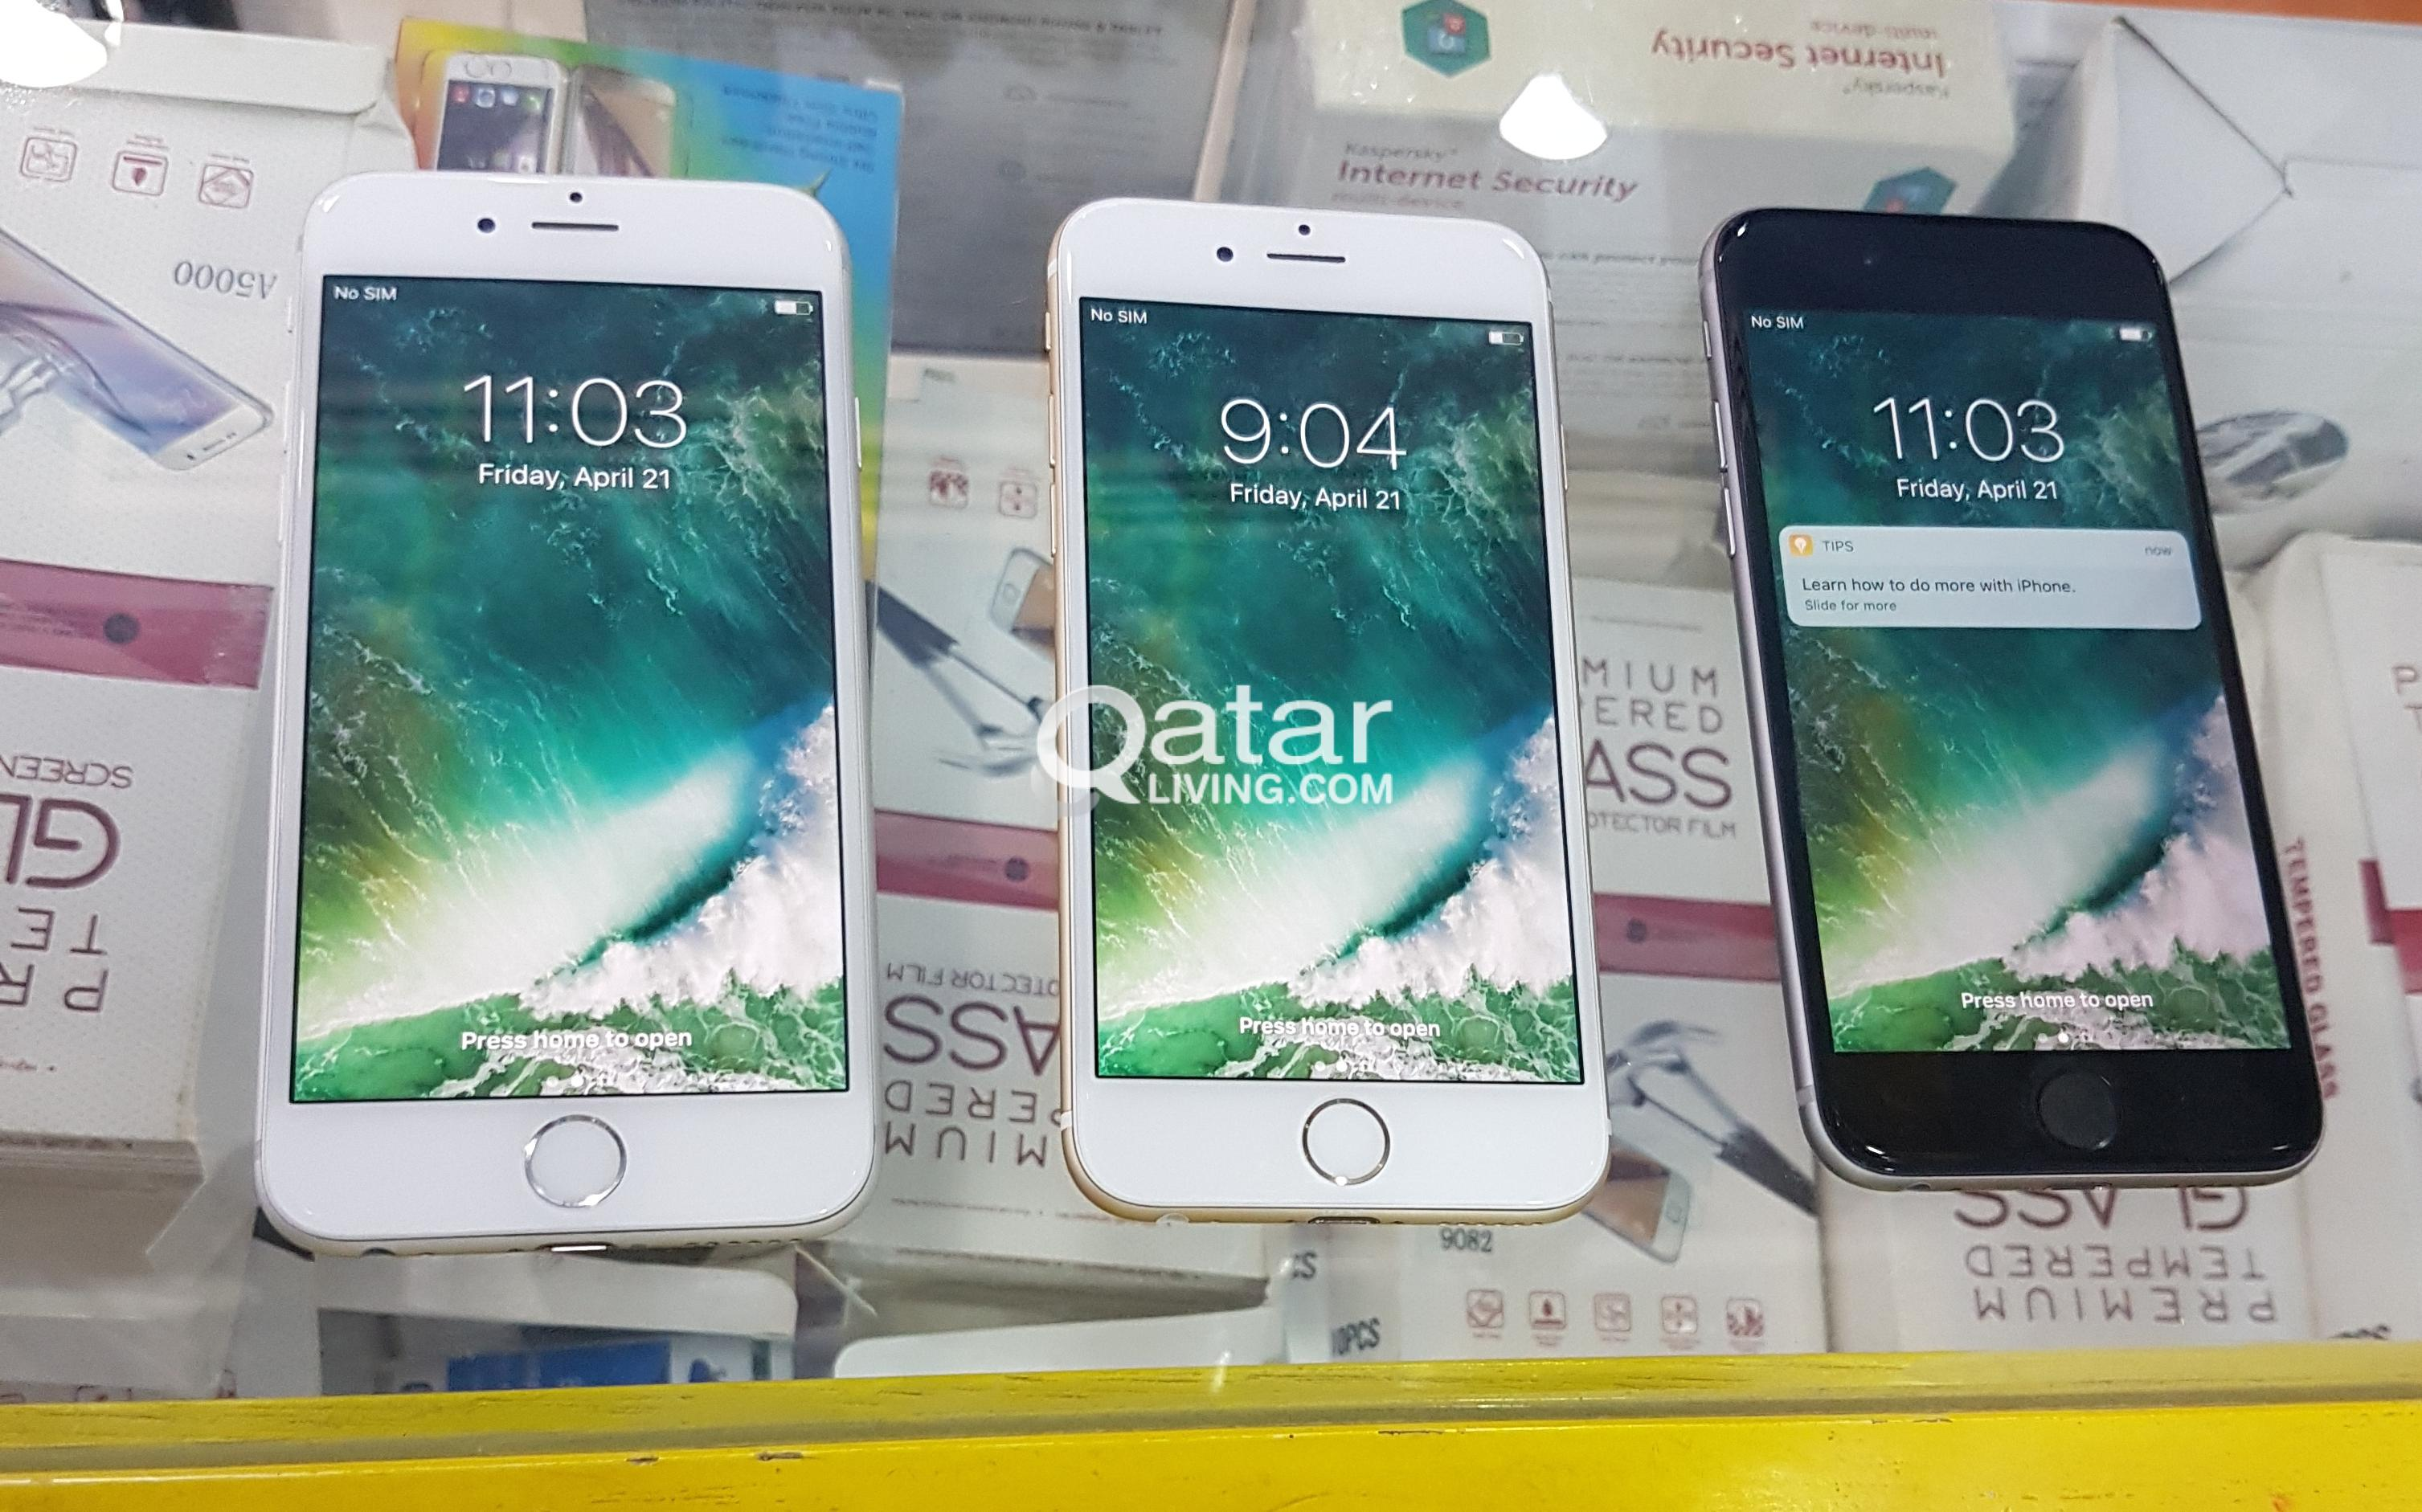 Apple Iphone 6 64gb Qatar Living 6s Gold Grey Silver Title Information For Sale Iphohe